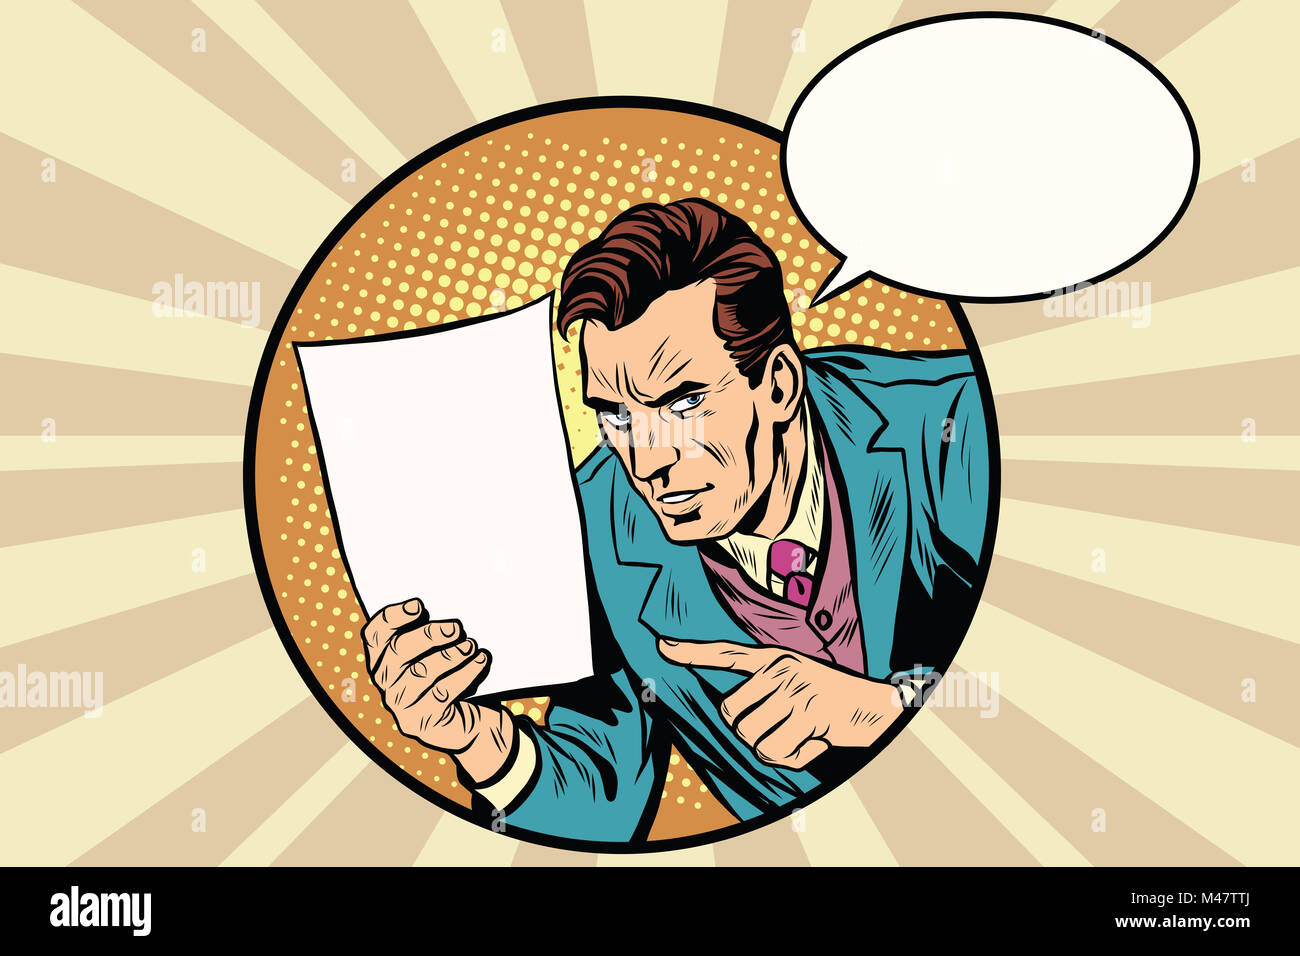 Male reminder white sheet of paper - Stock Image